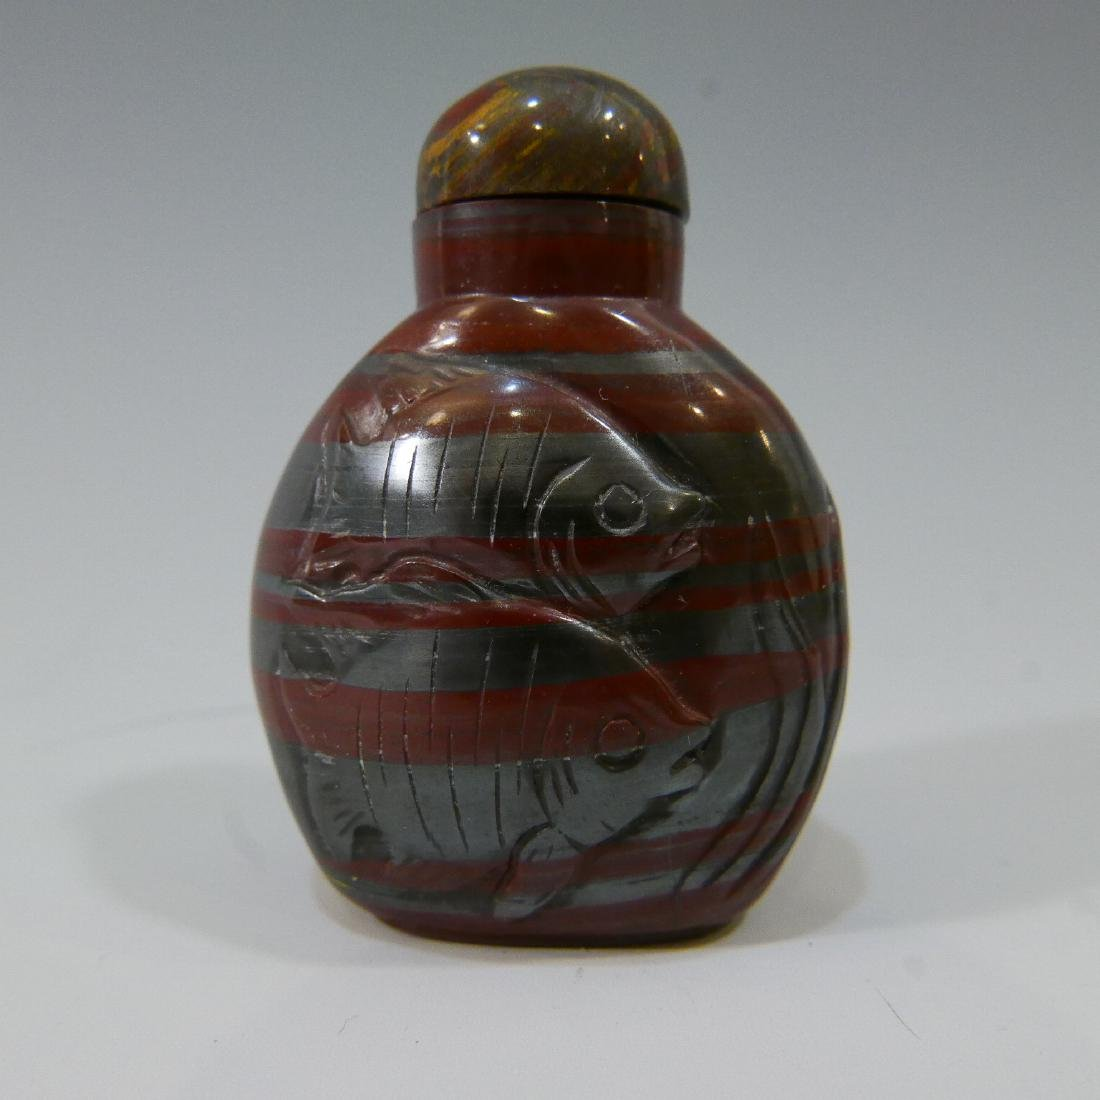 CHINESE ANTIQUE SNUFF BOTTLE - AGATE - QING DYNASTY